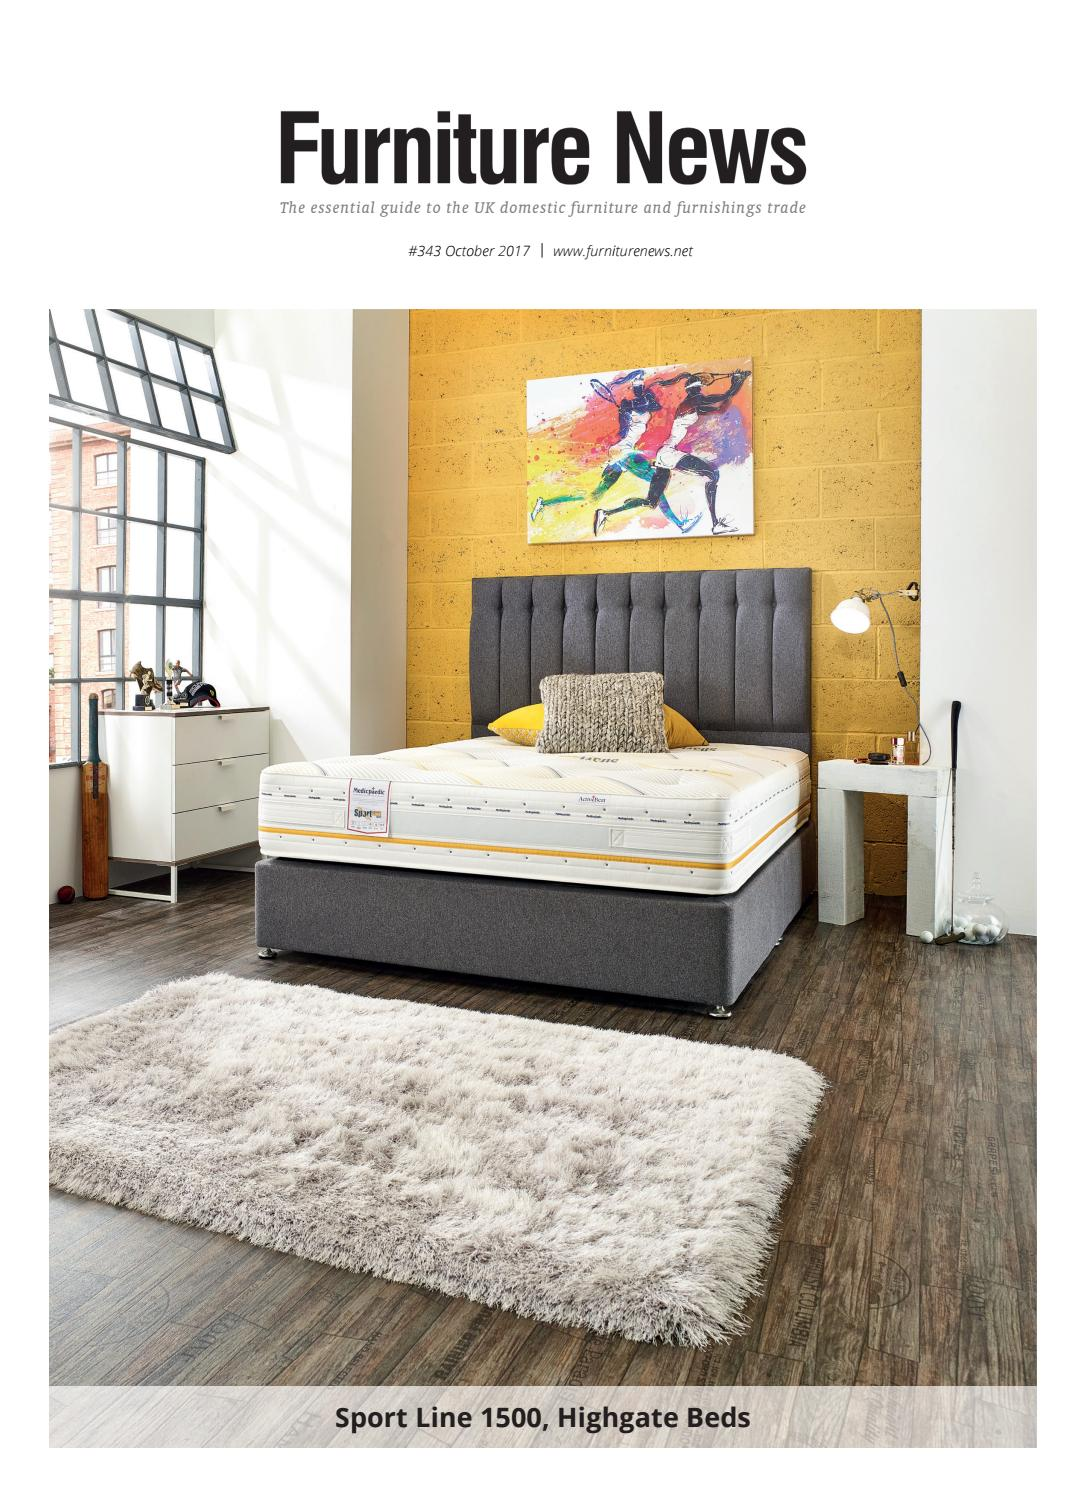 Interio Sofa Harrison Furniture News 343 By Gearing Media Group Ltd Issuu